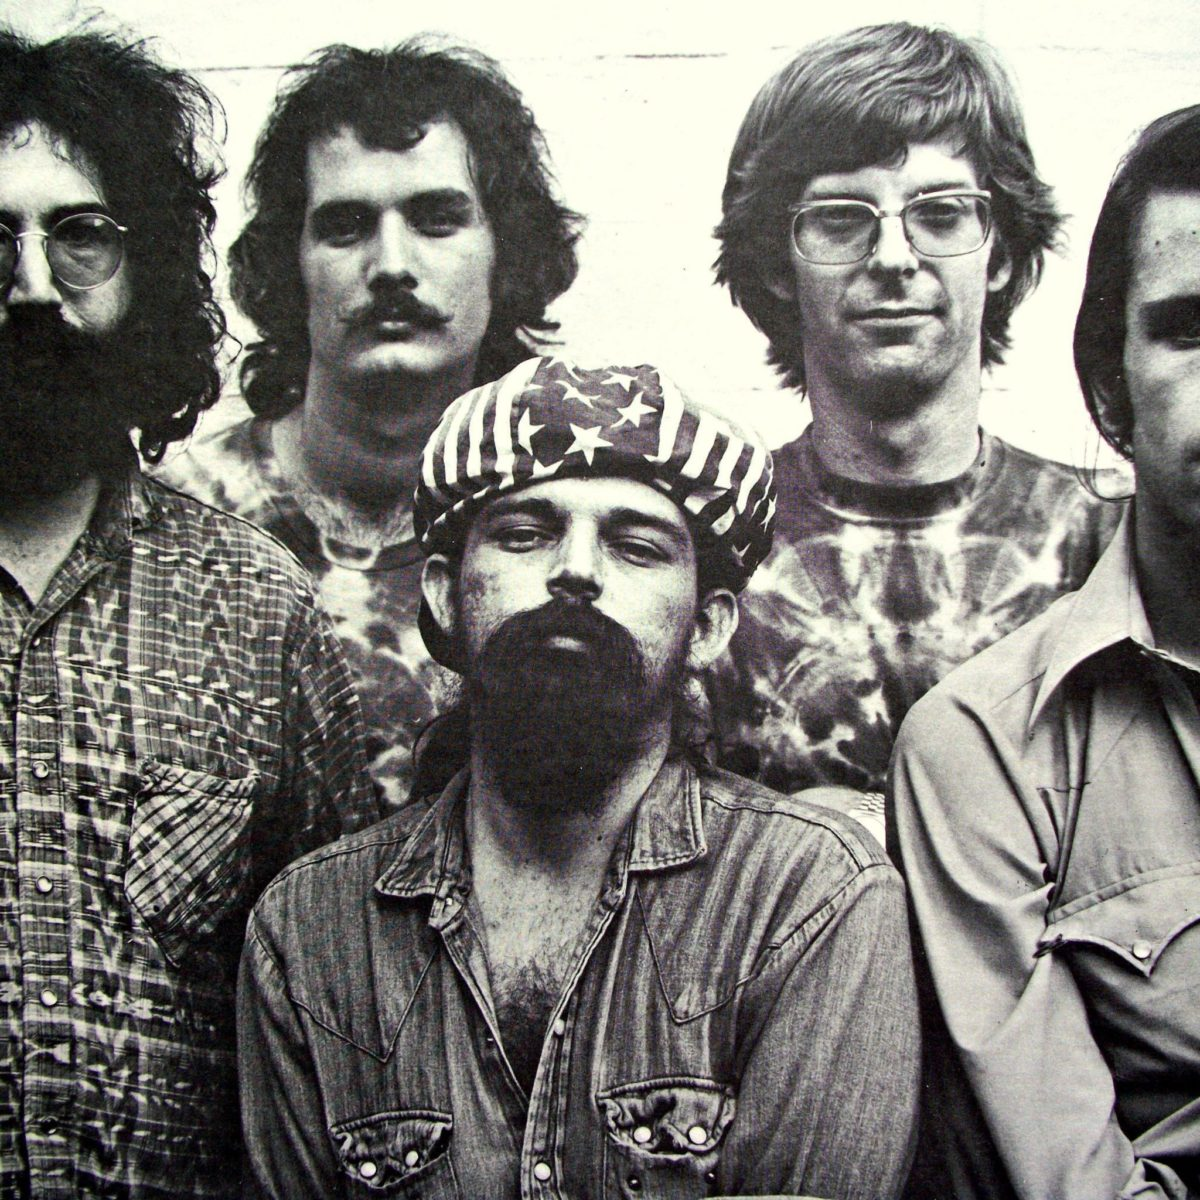 Download Wallpaper Grateful dead, Rock band, Psychedelic .